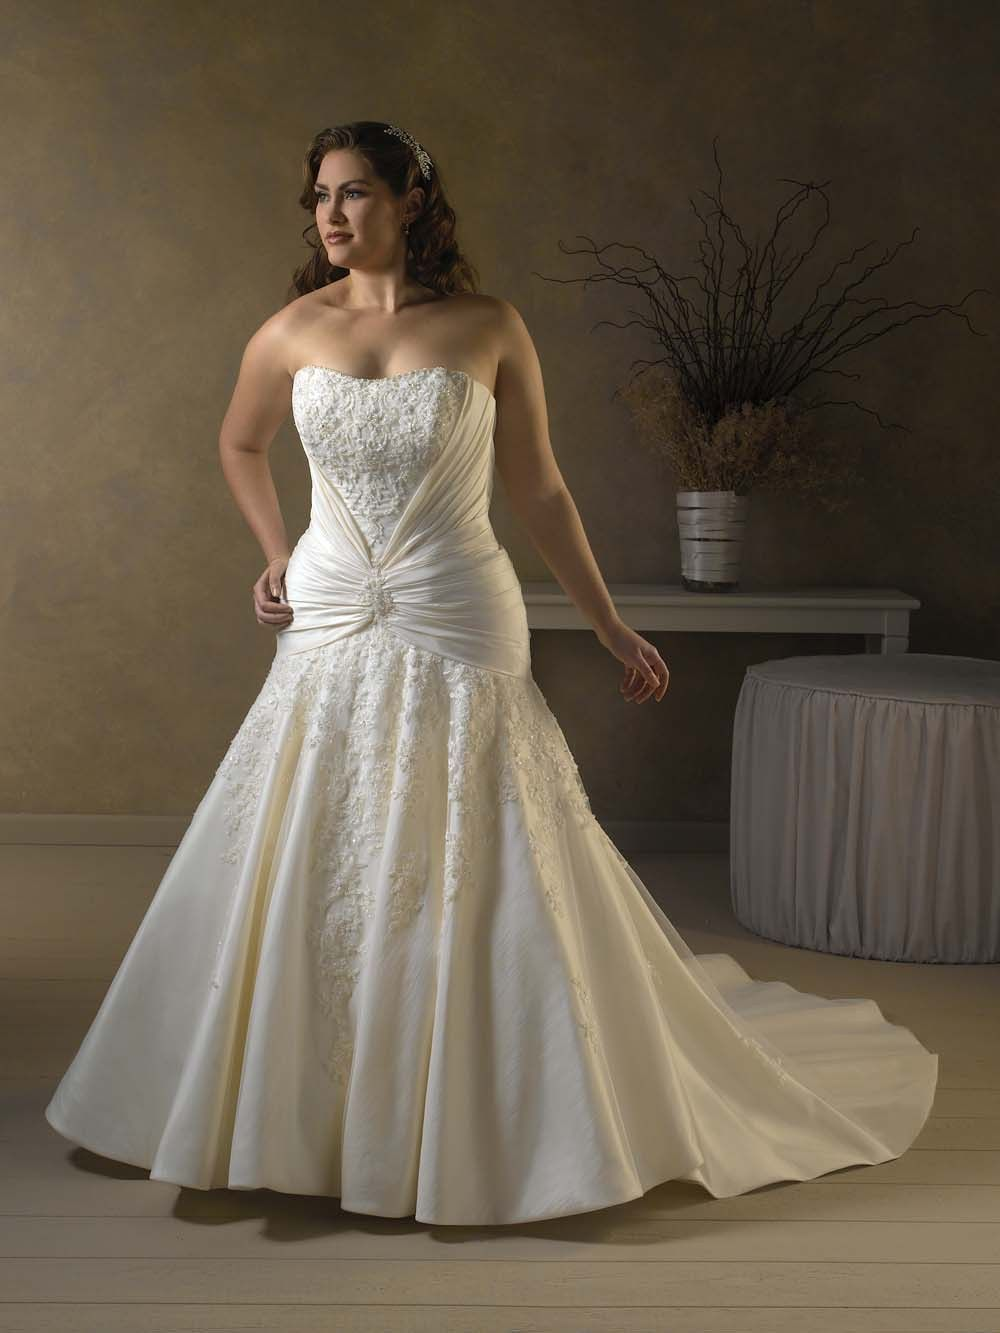 Plus size country wedding dresses plus size wedding dress plus size country wedding dresses plus size wedding dress high quality and ombrellifo Gallery